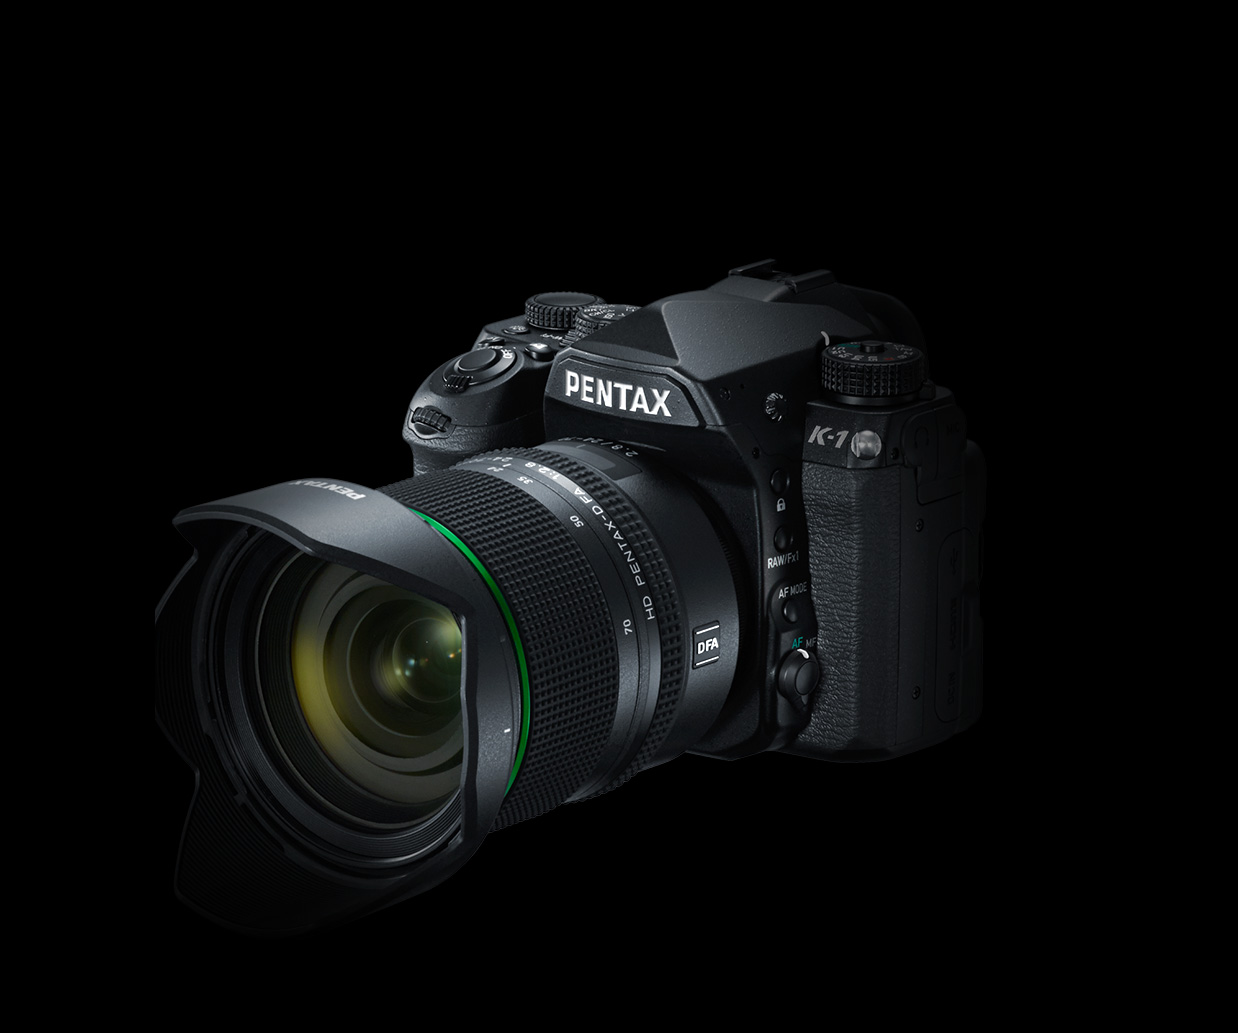 pentax-k-1-reviews-videos